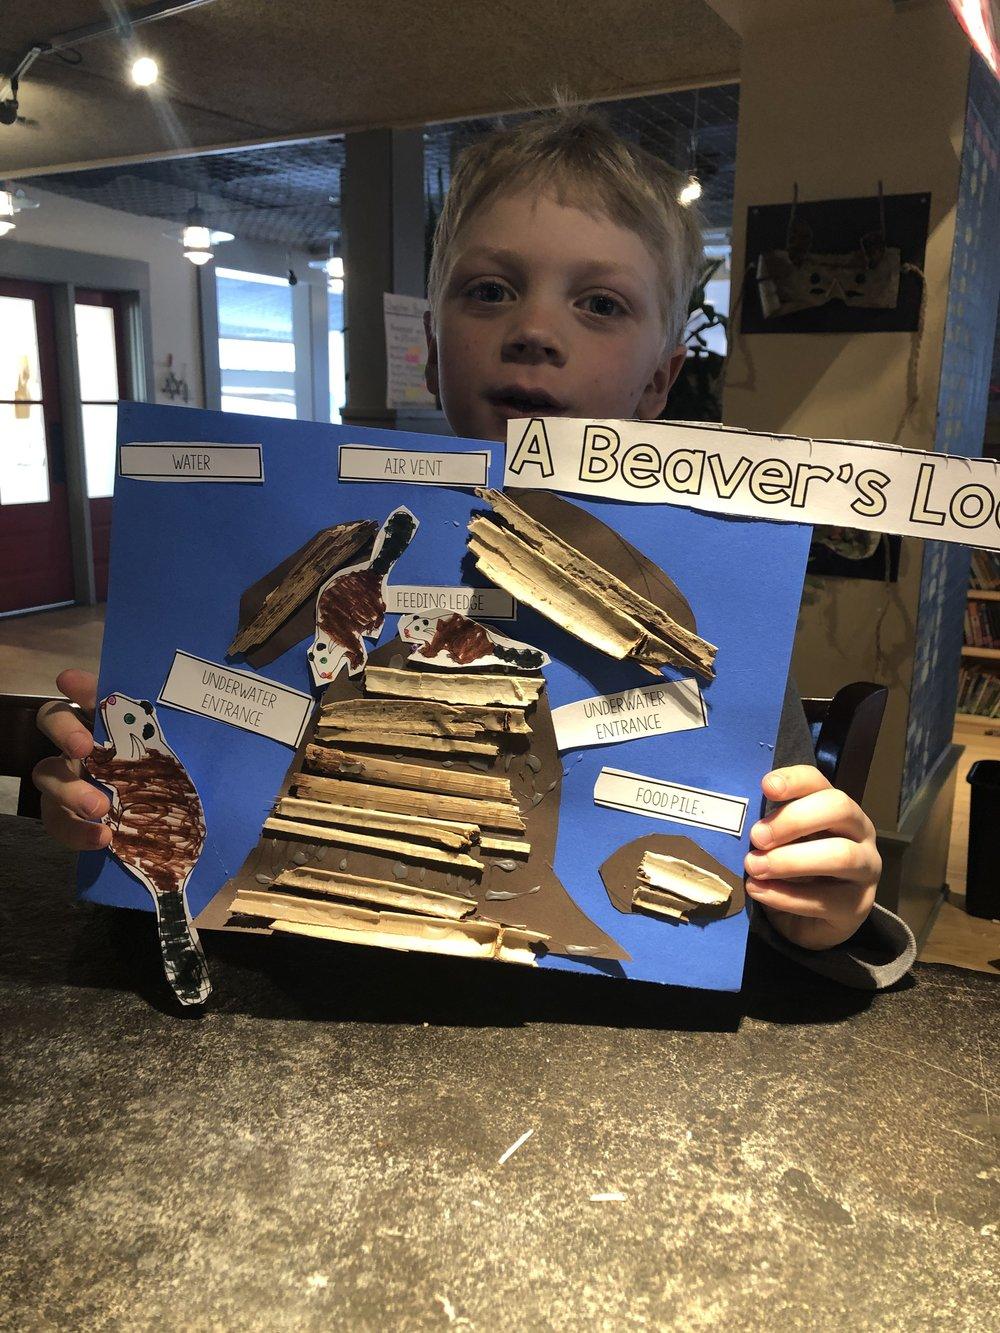 A student in the Rivers Class shows off his final diagram of a Beaver's Lodge.